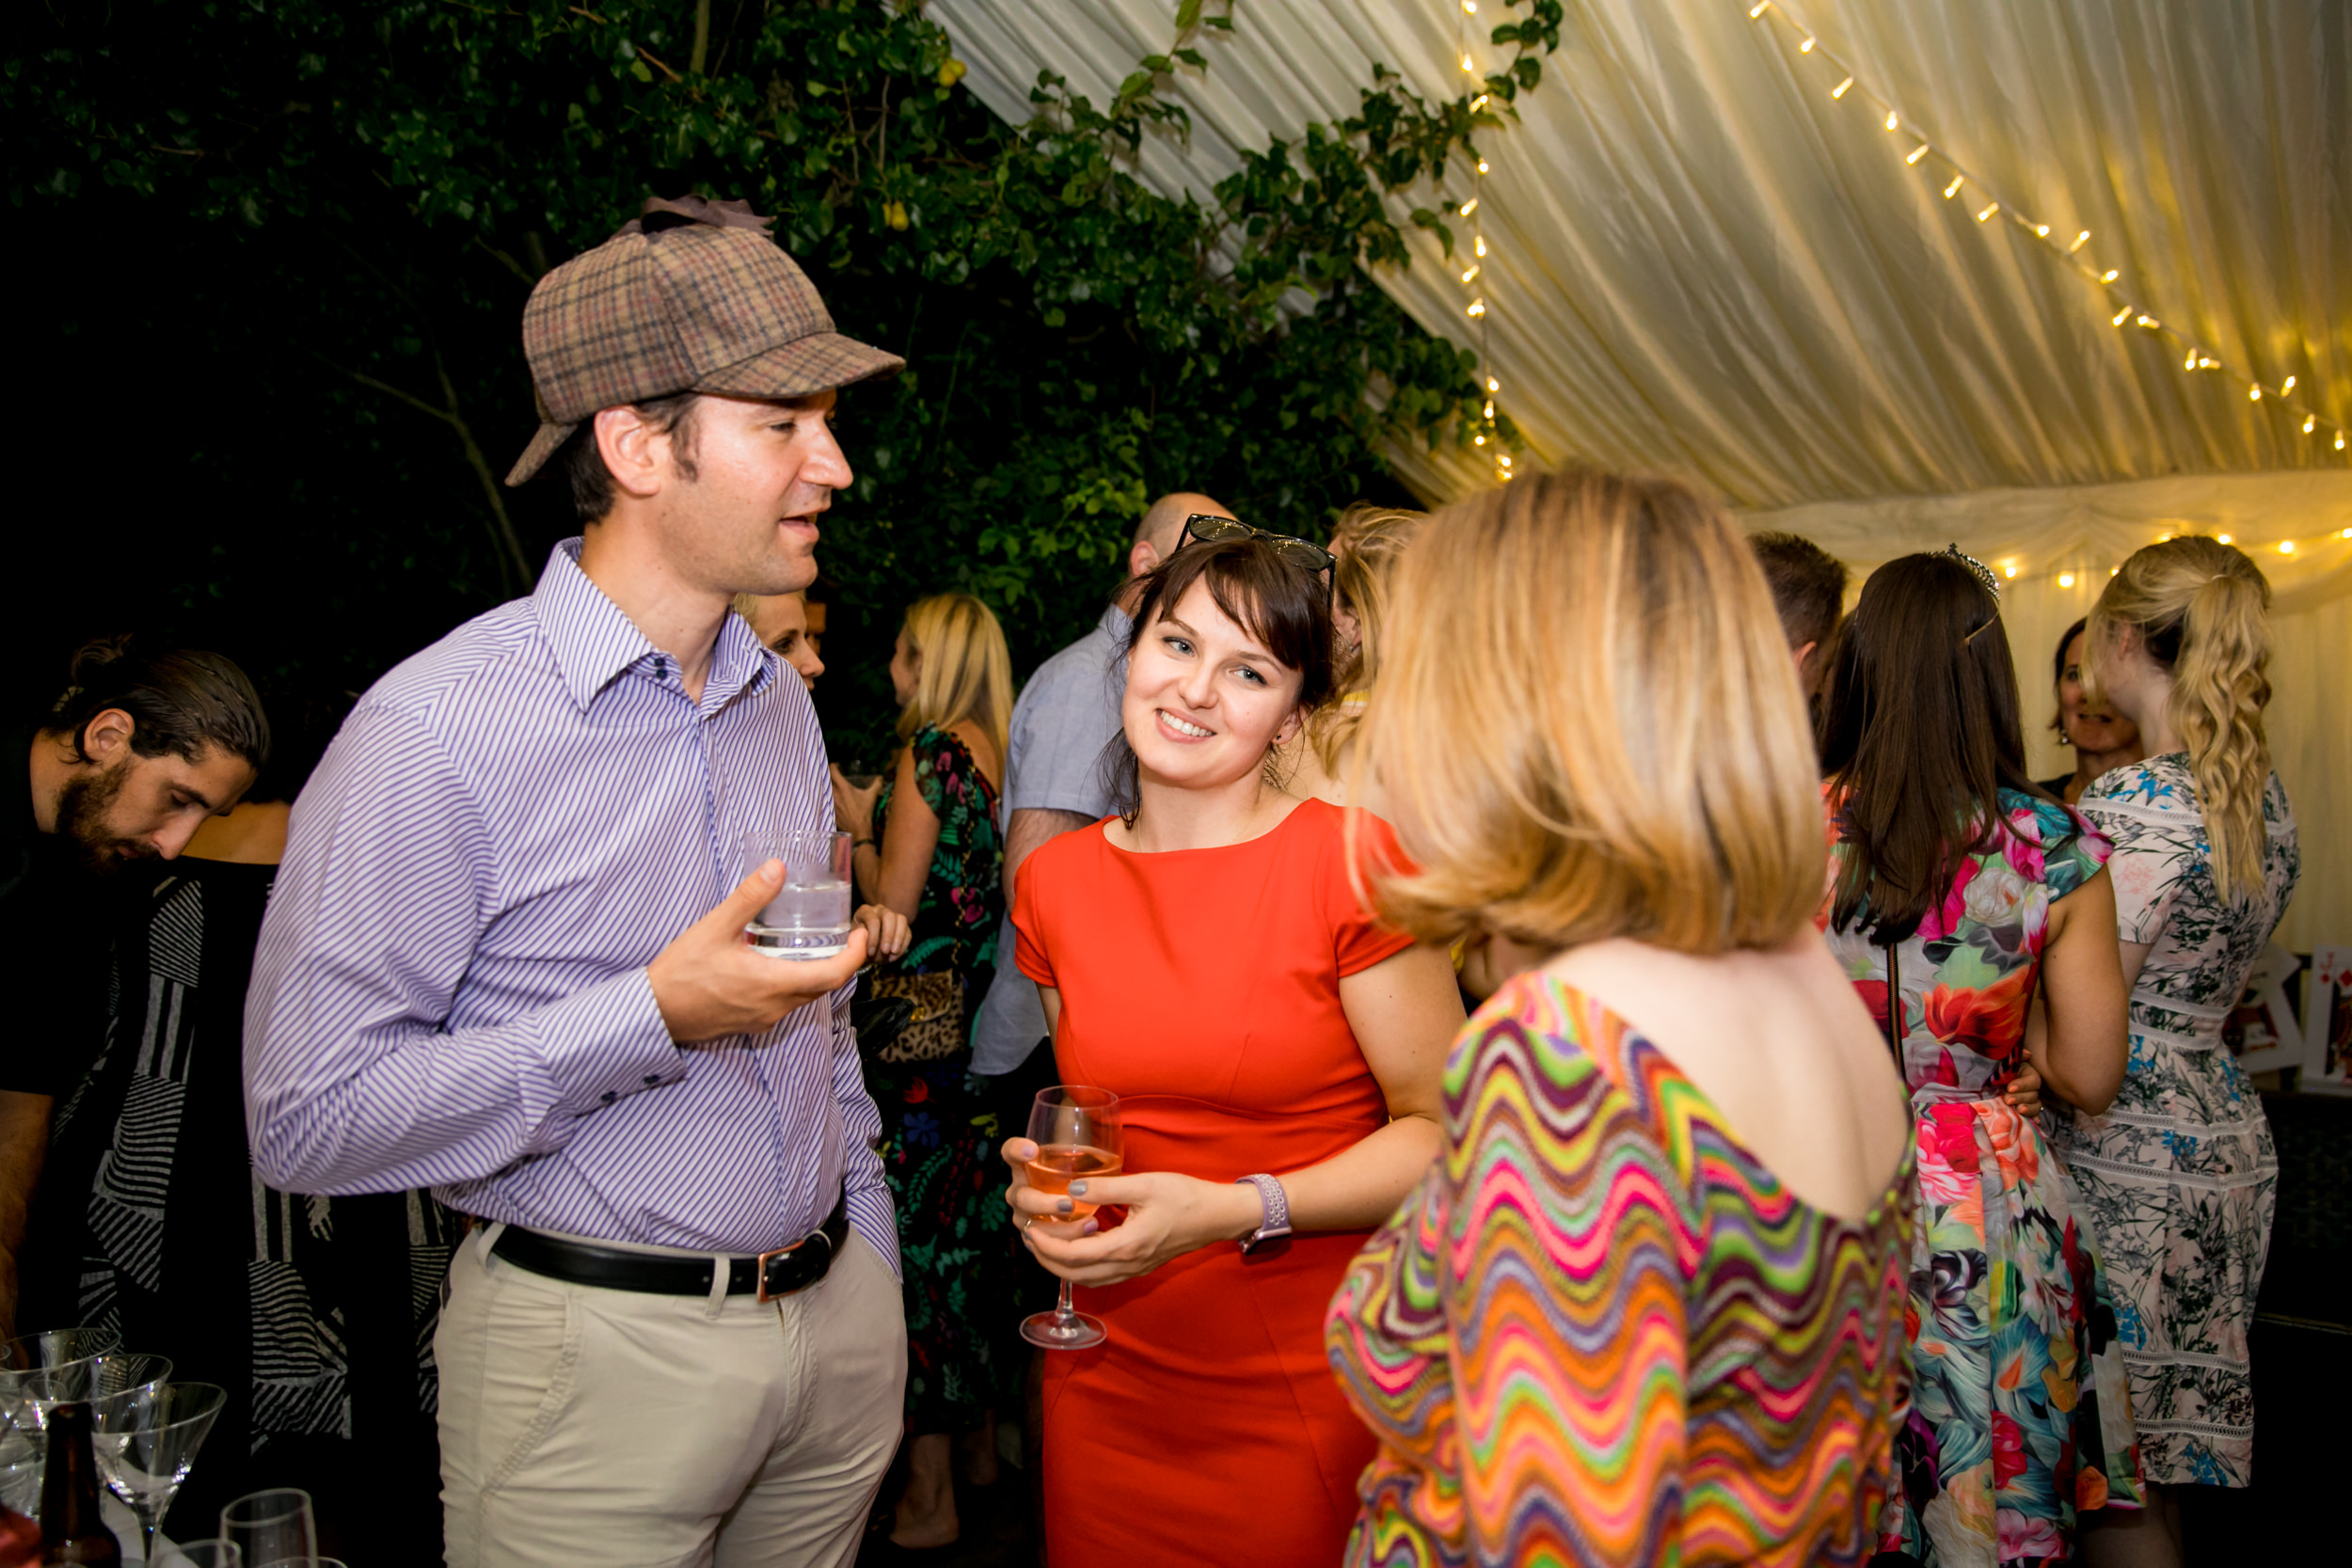 Kate's Party-302.jpg